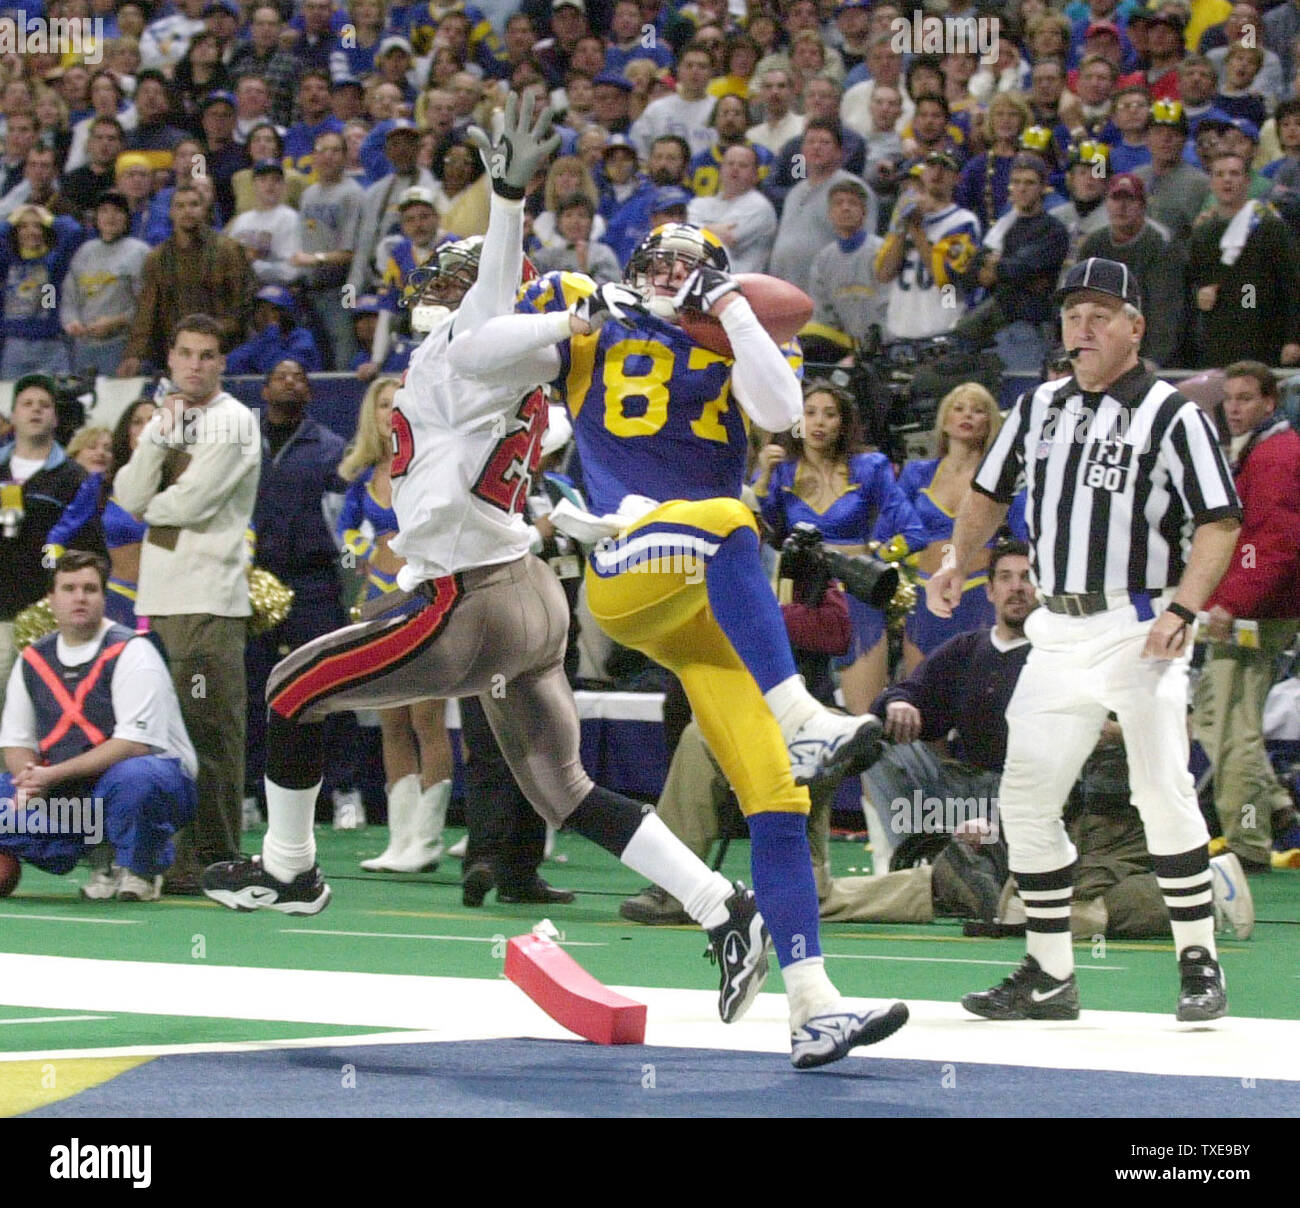 slp2000012316 23 january 2000 st louis missouri usa st louis rams ricky proehl hangs onto the football for a touchdown as tampa bay buccaneers brian kelly tries to defend in https www alamy com slp2000012316 23 january 2000 st louis missouri usa st louis rams ricky proehl hangs onto the football for a touchdown as tampa bay buccaneers brian kelly tries to defend in the closing moments of the nfc championship game at the trans world dome january 23 the touchdown was the first of the season for proehl and the only one of the game as the rams went on to beat the bucs 11 6 to advance to the super bowl rgbgbill greenblatt upi image257240927 html